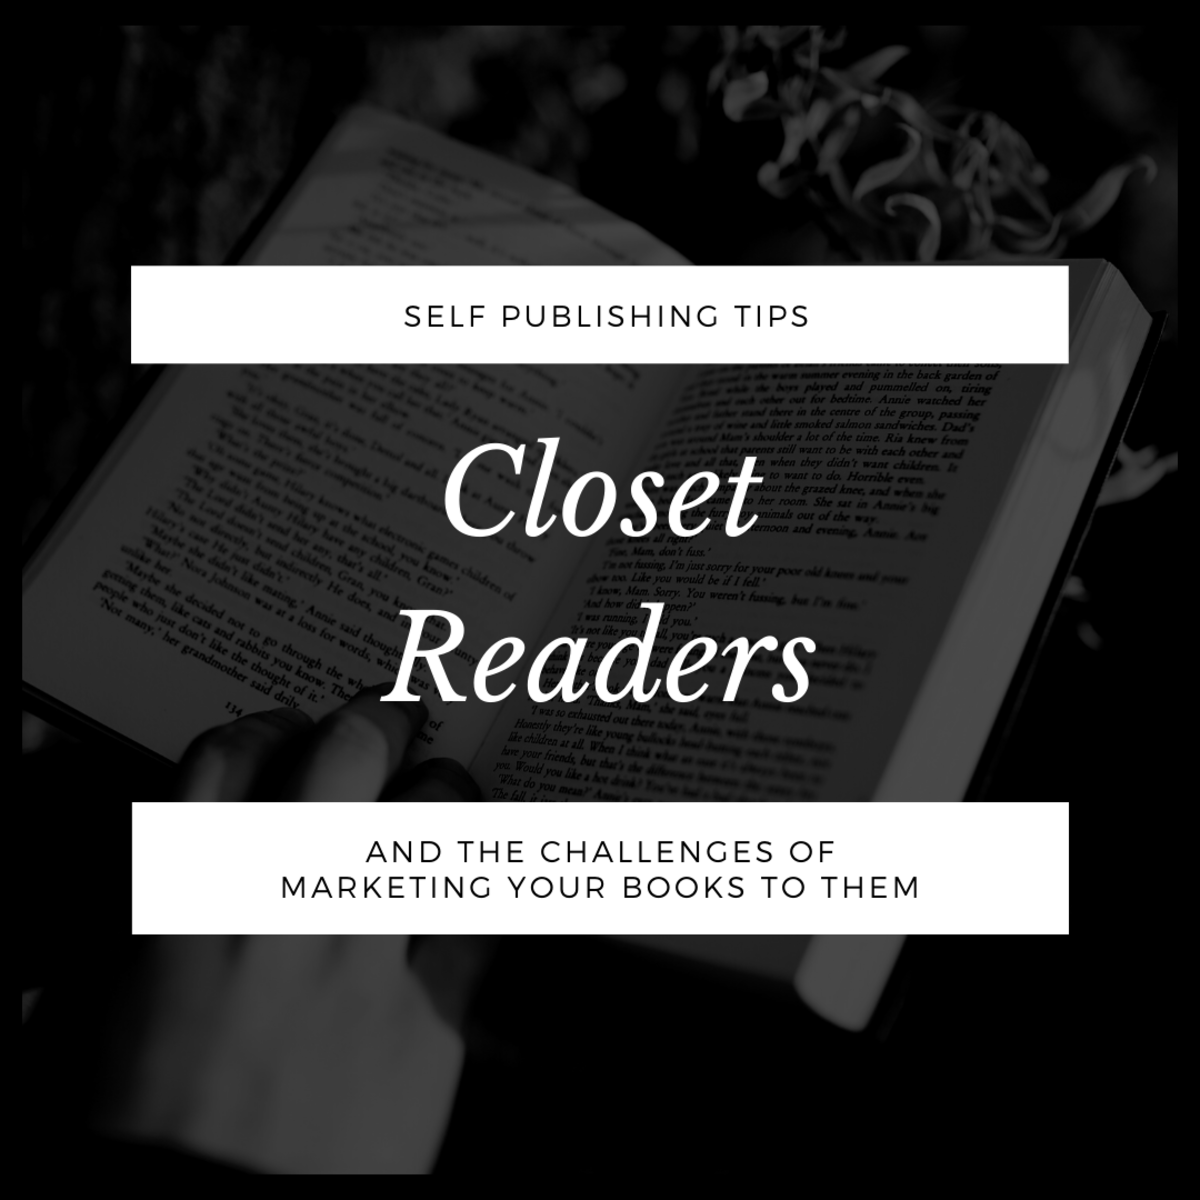 Book Marketing Challenge: Closet Readers